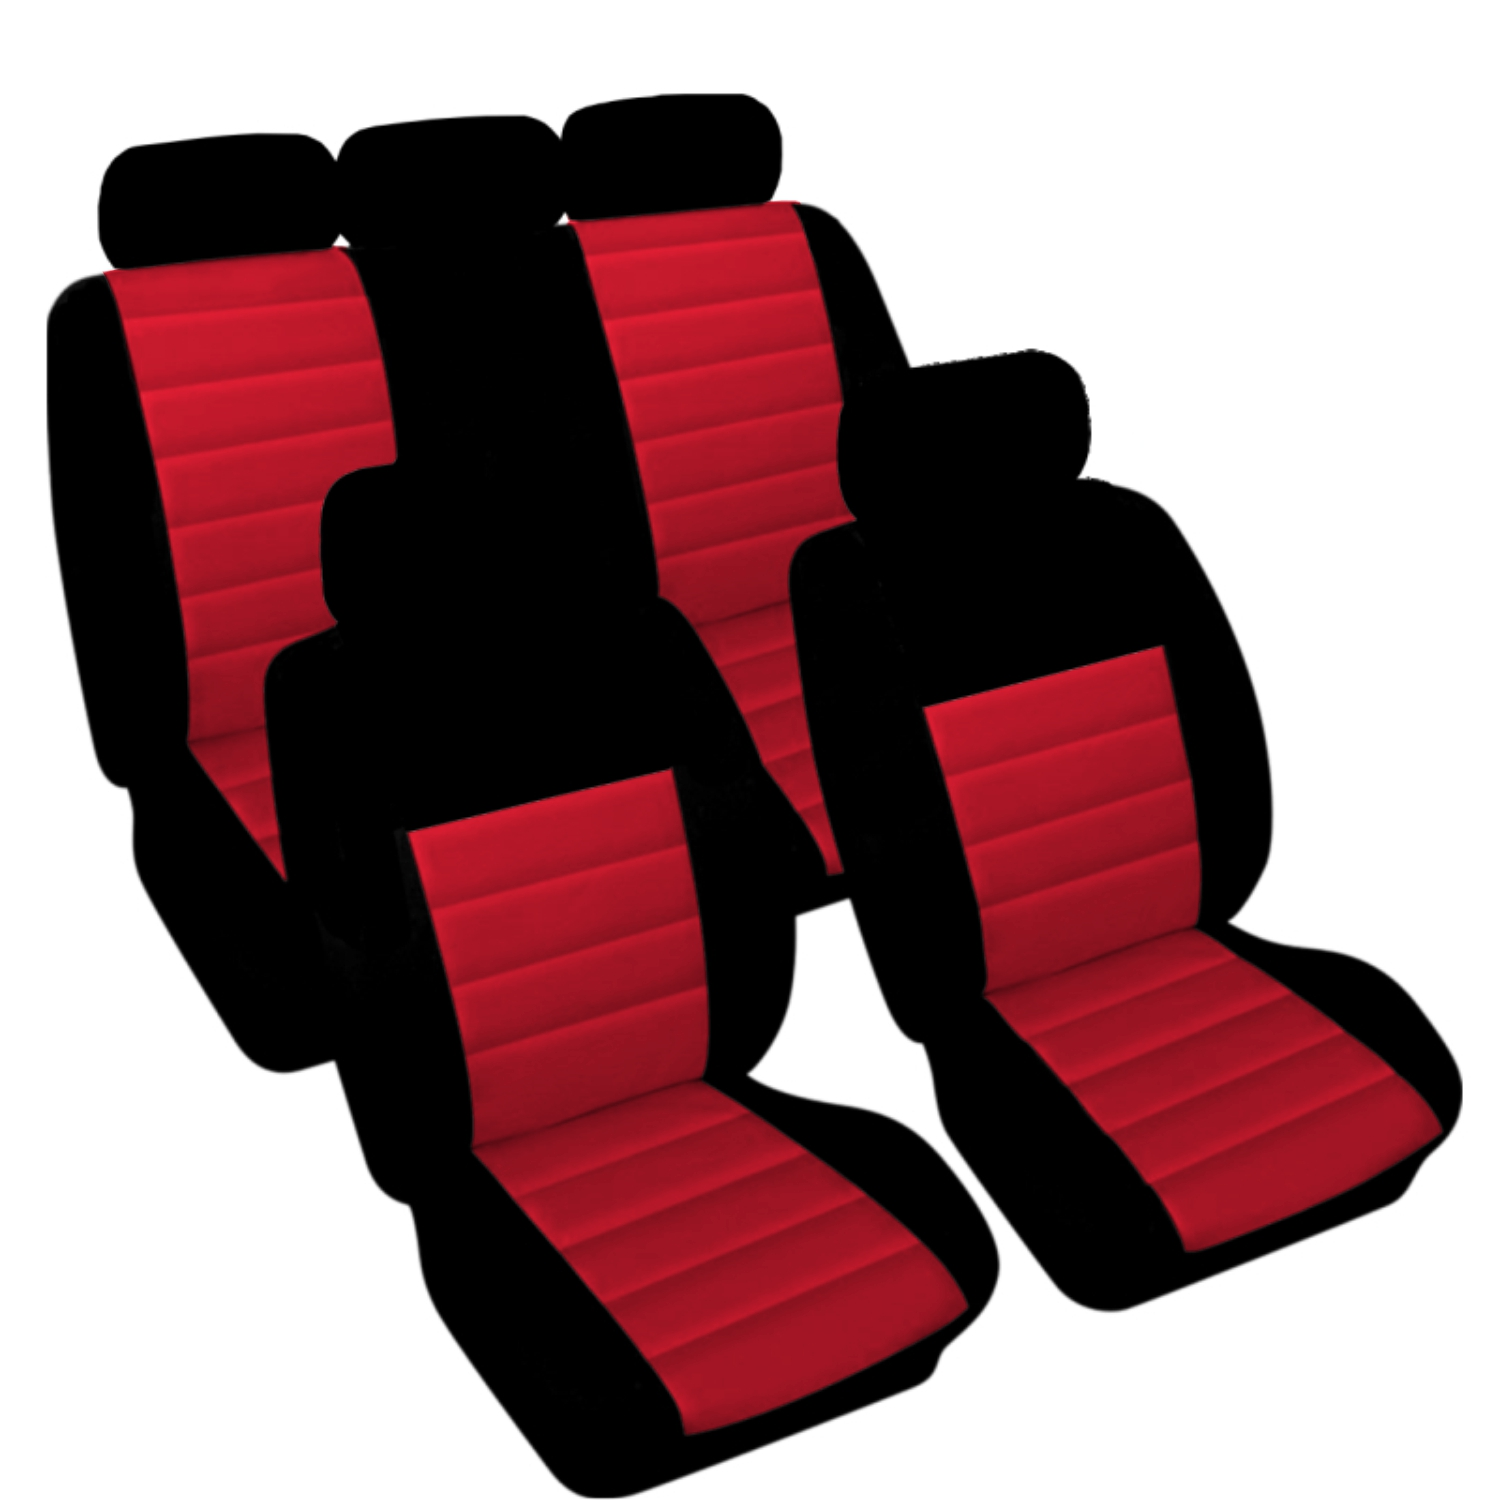 SB402 - Car Seat Cover set protector with SIDE AIRBAG BLACK / RED